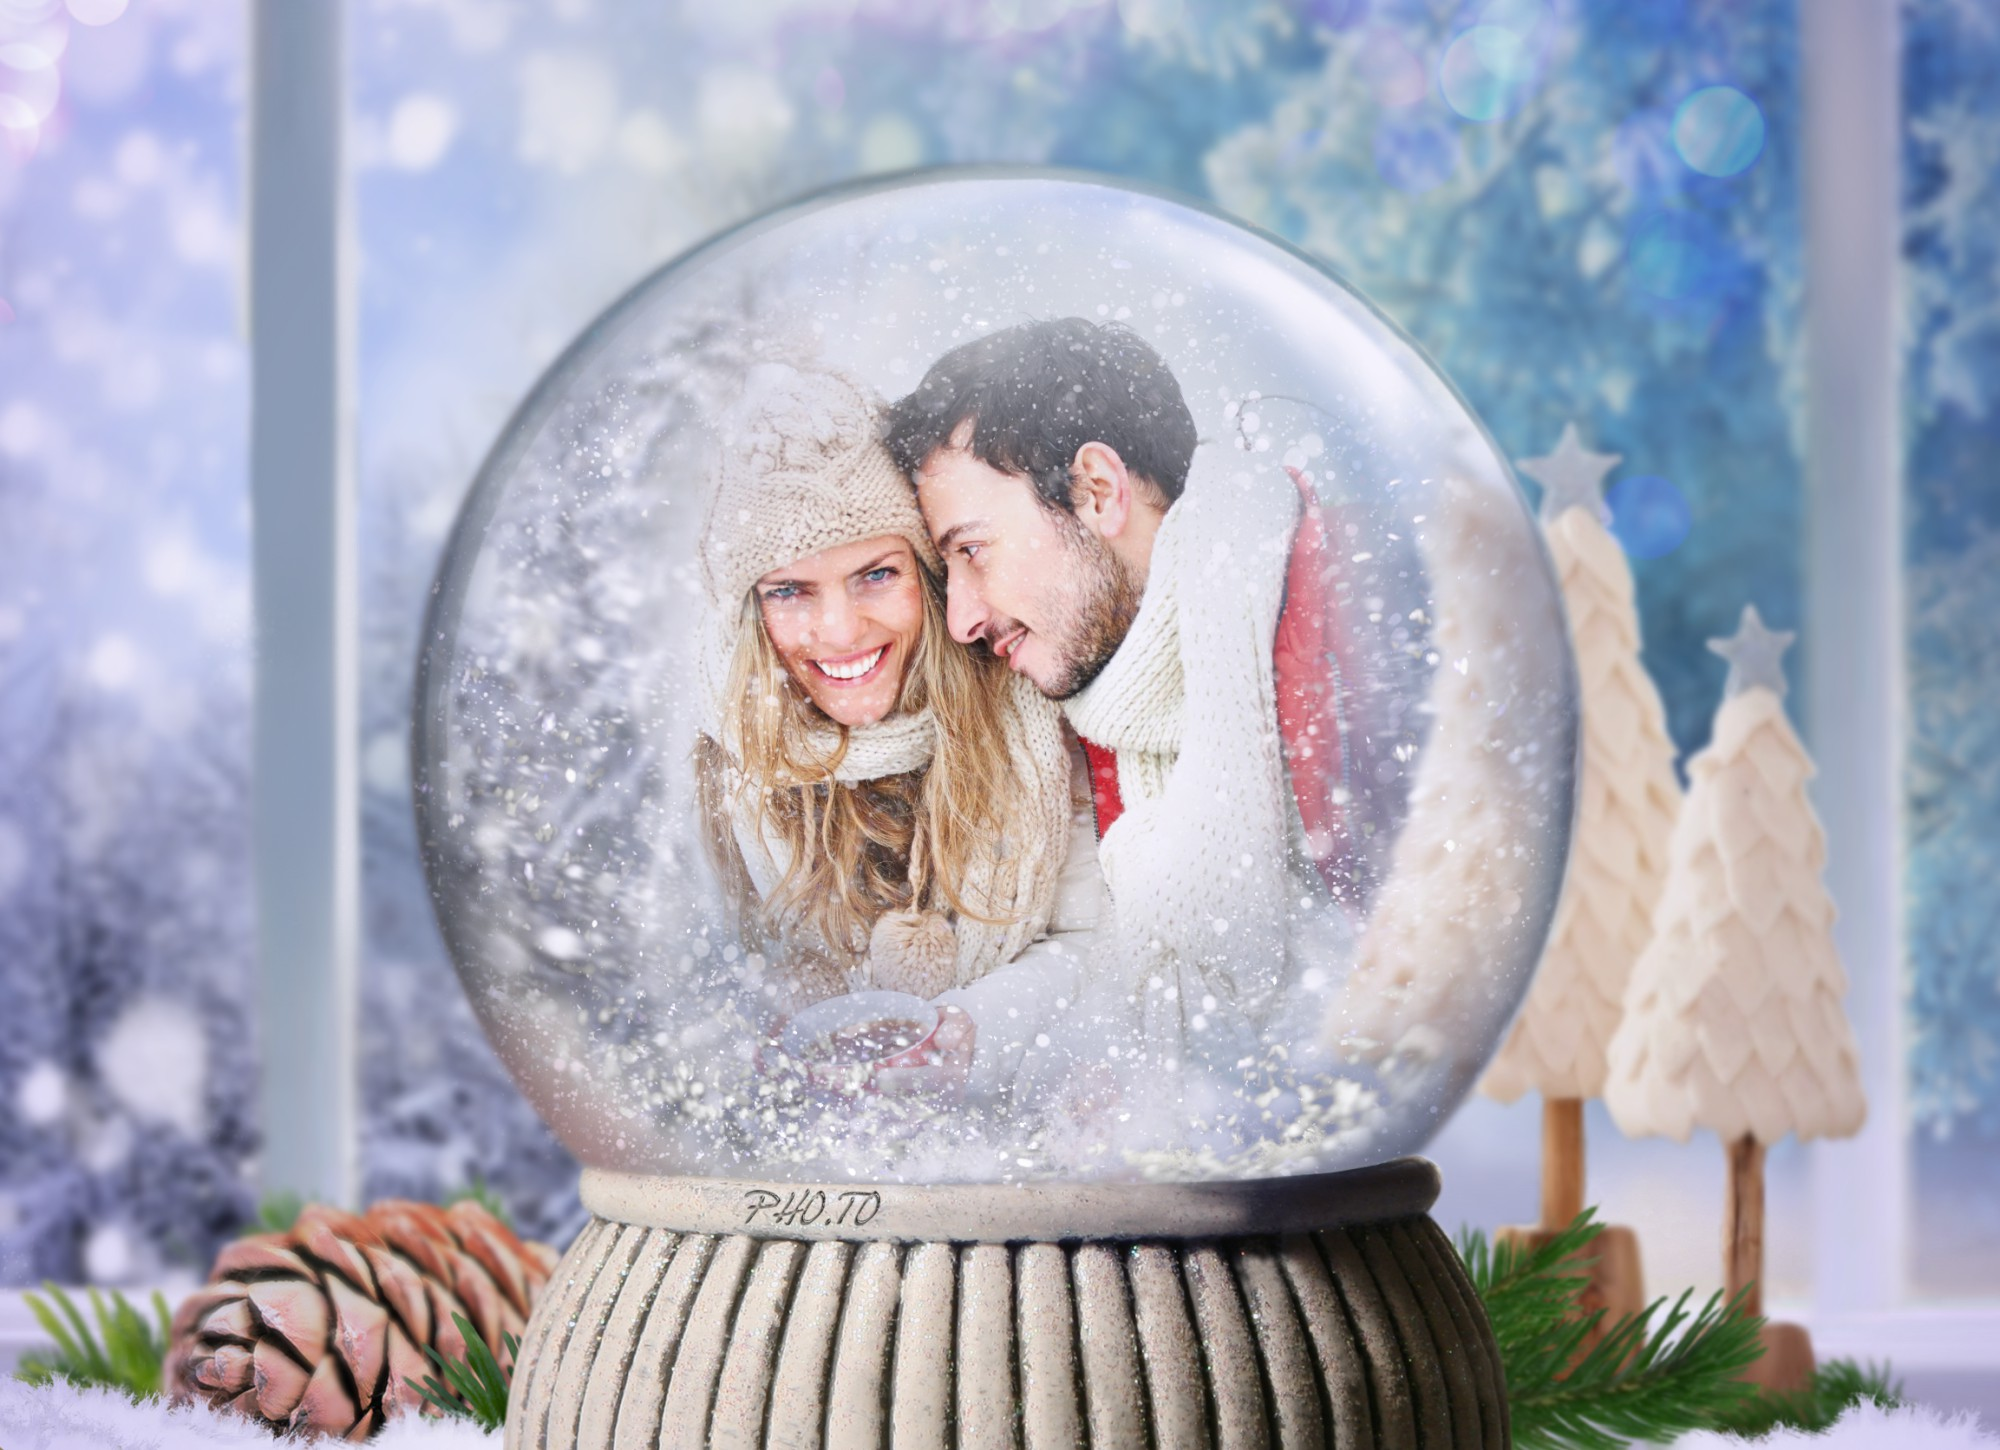 Romantic Christmas Snow Globe with a photo of a couple in love